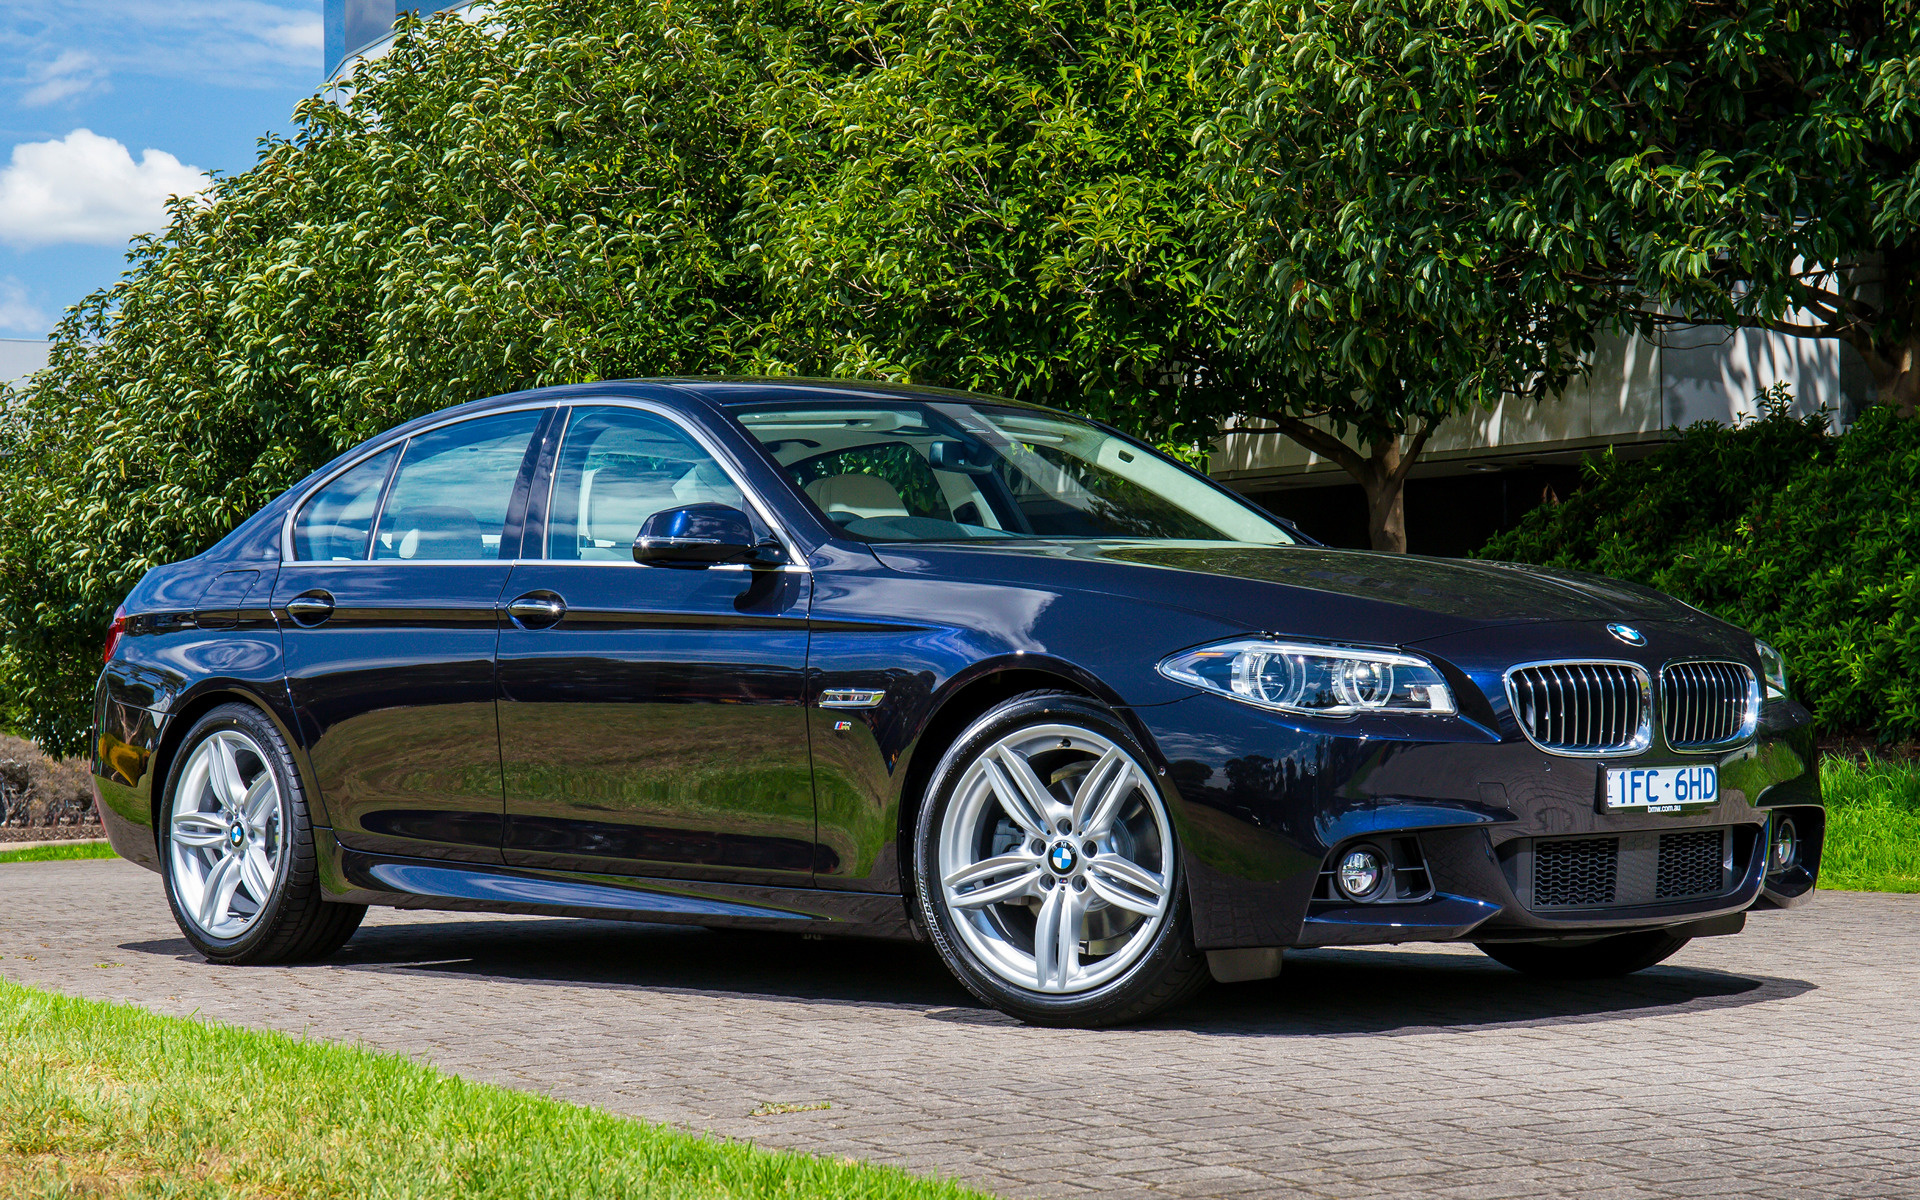 2013 Bmw 5 Series M Sport Au Wallpapers And Hd Images